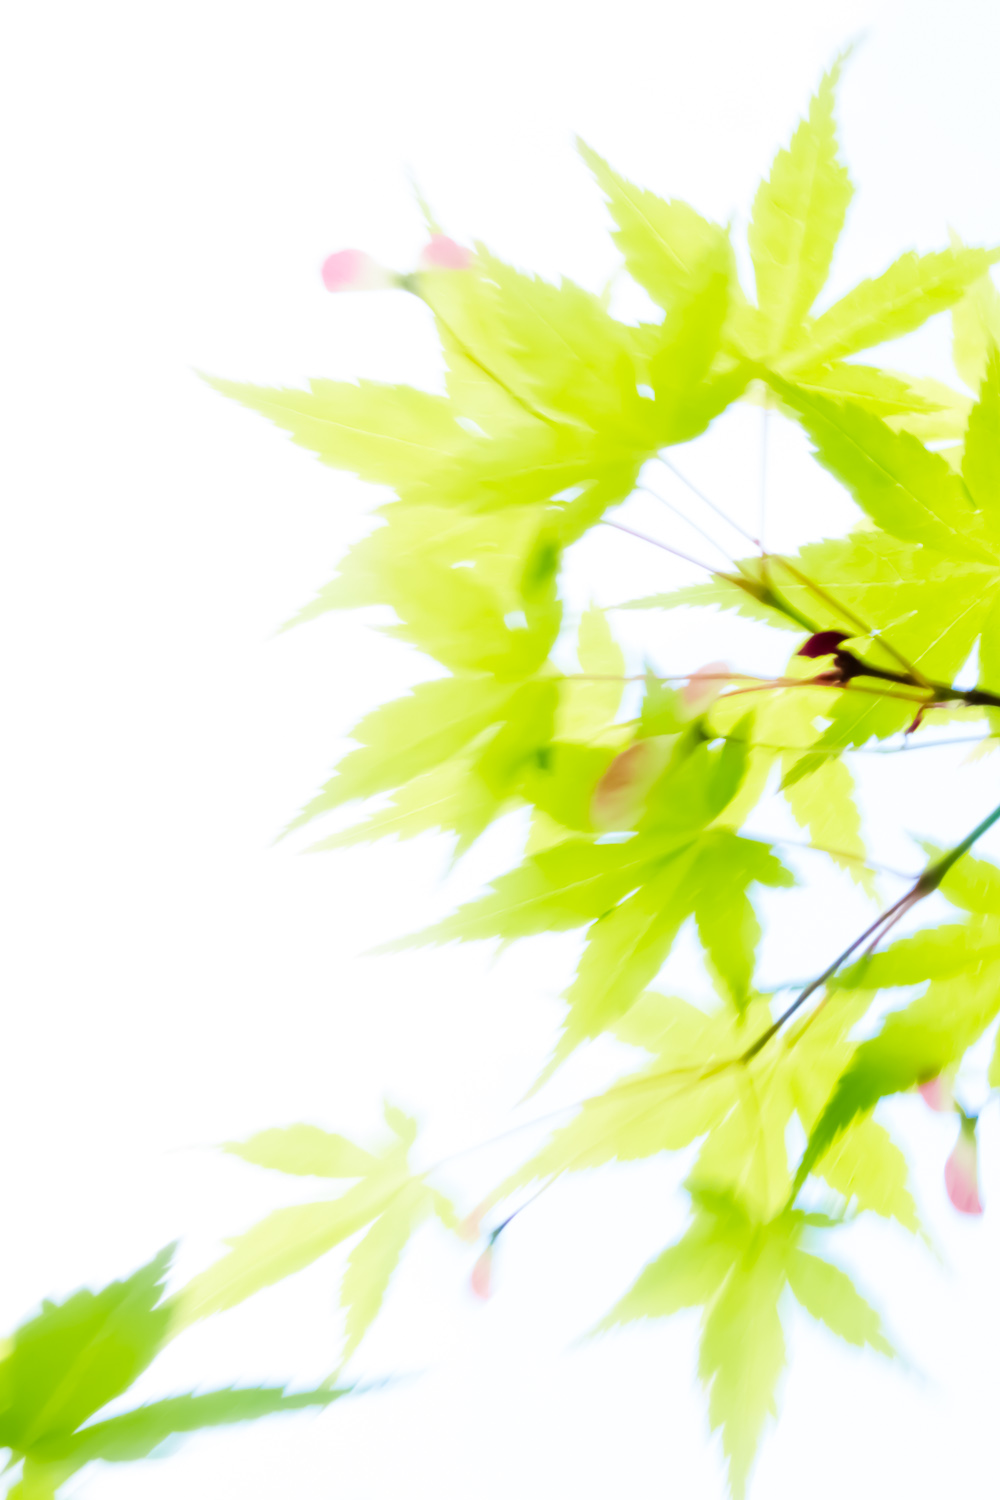 JAPANEESE MAPLE, USA by Carine